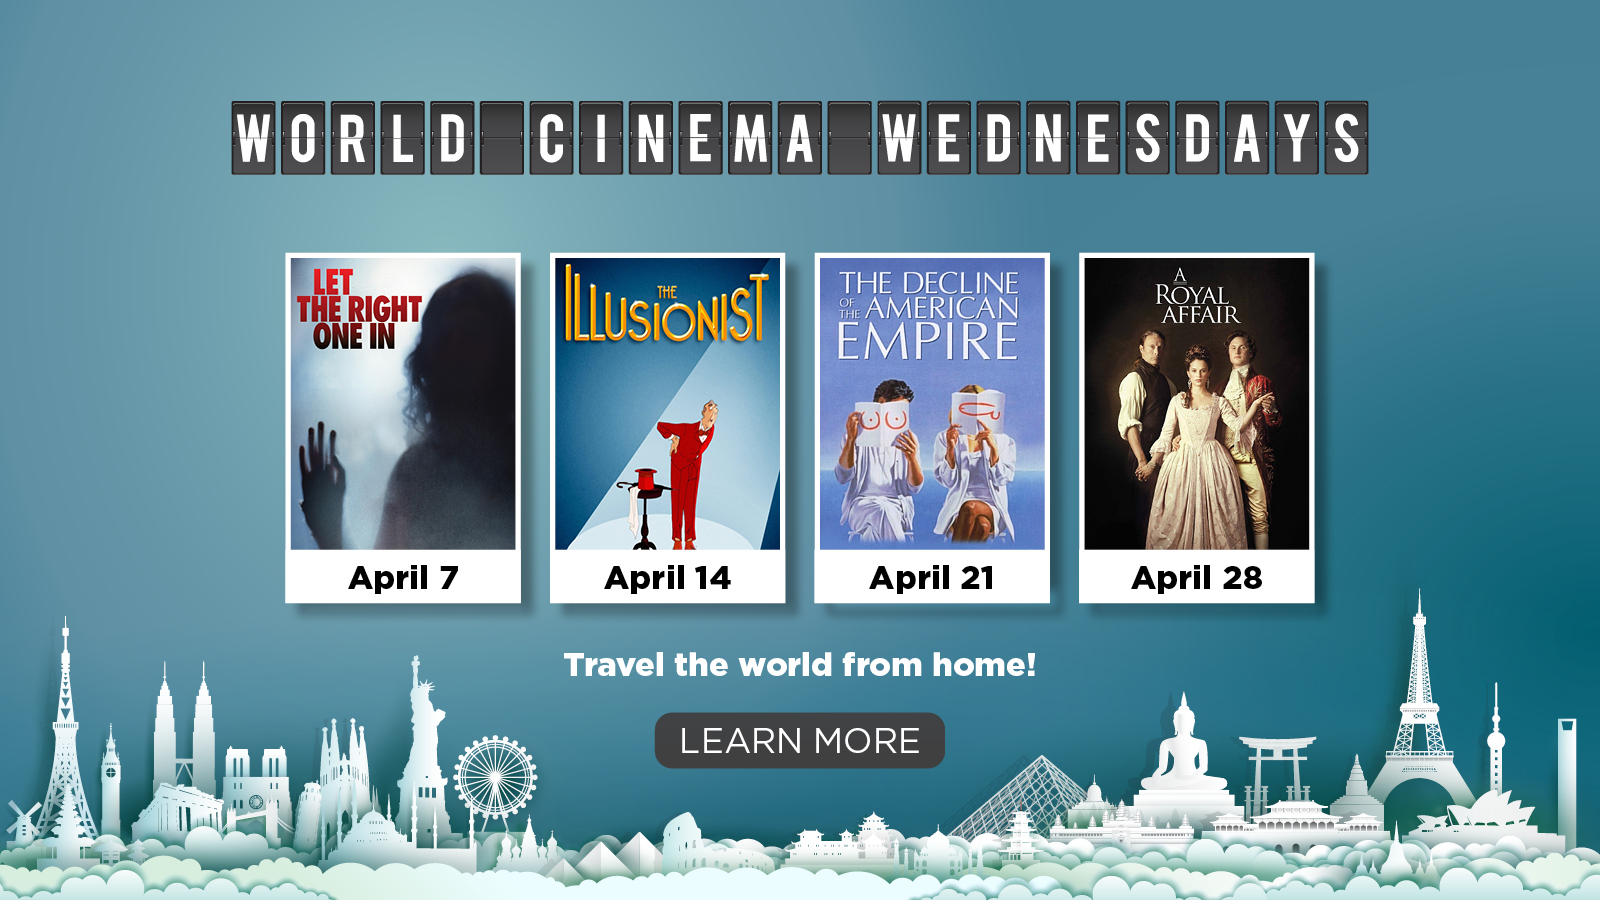 World Cinema Wednesday – Learn More